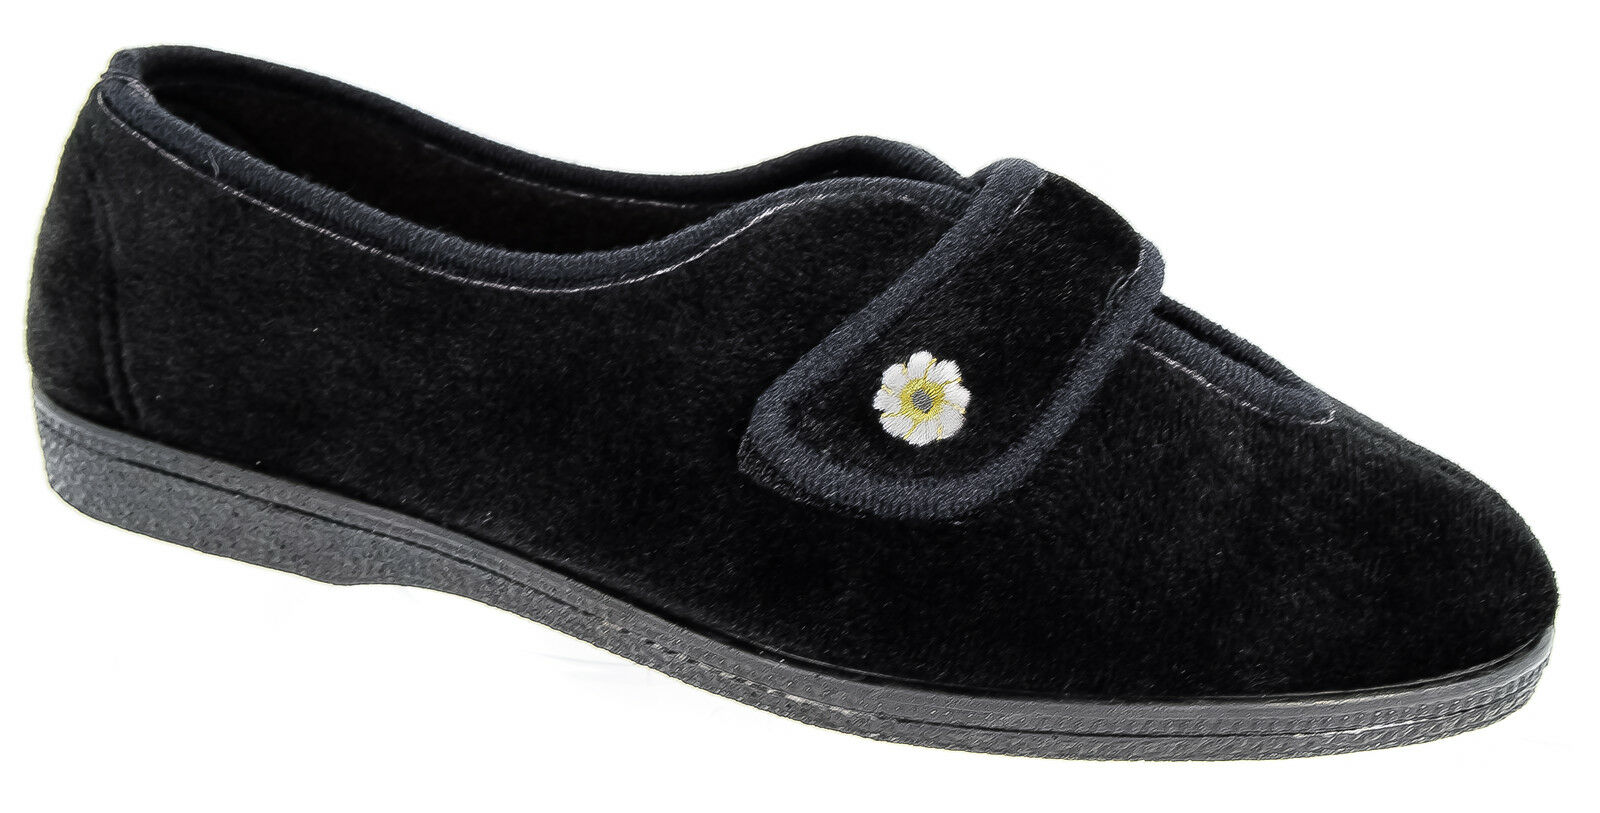 Womens Ladies Wide Fit Slippers / Mirak Sizes 3 to 9